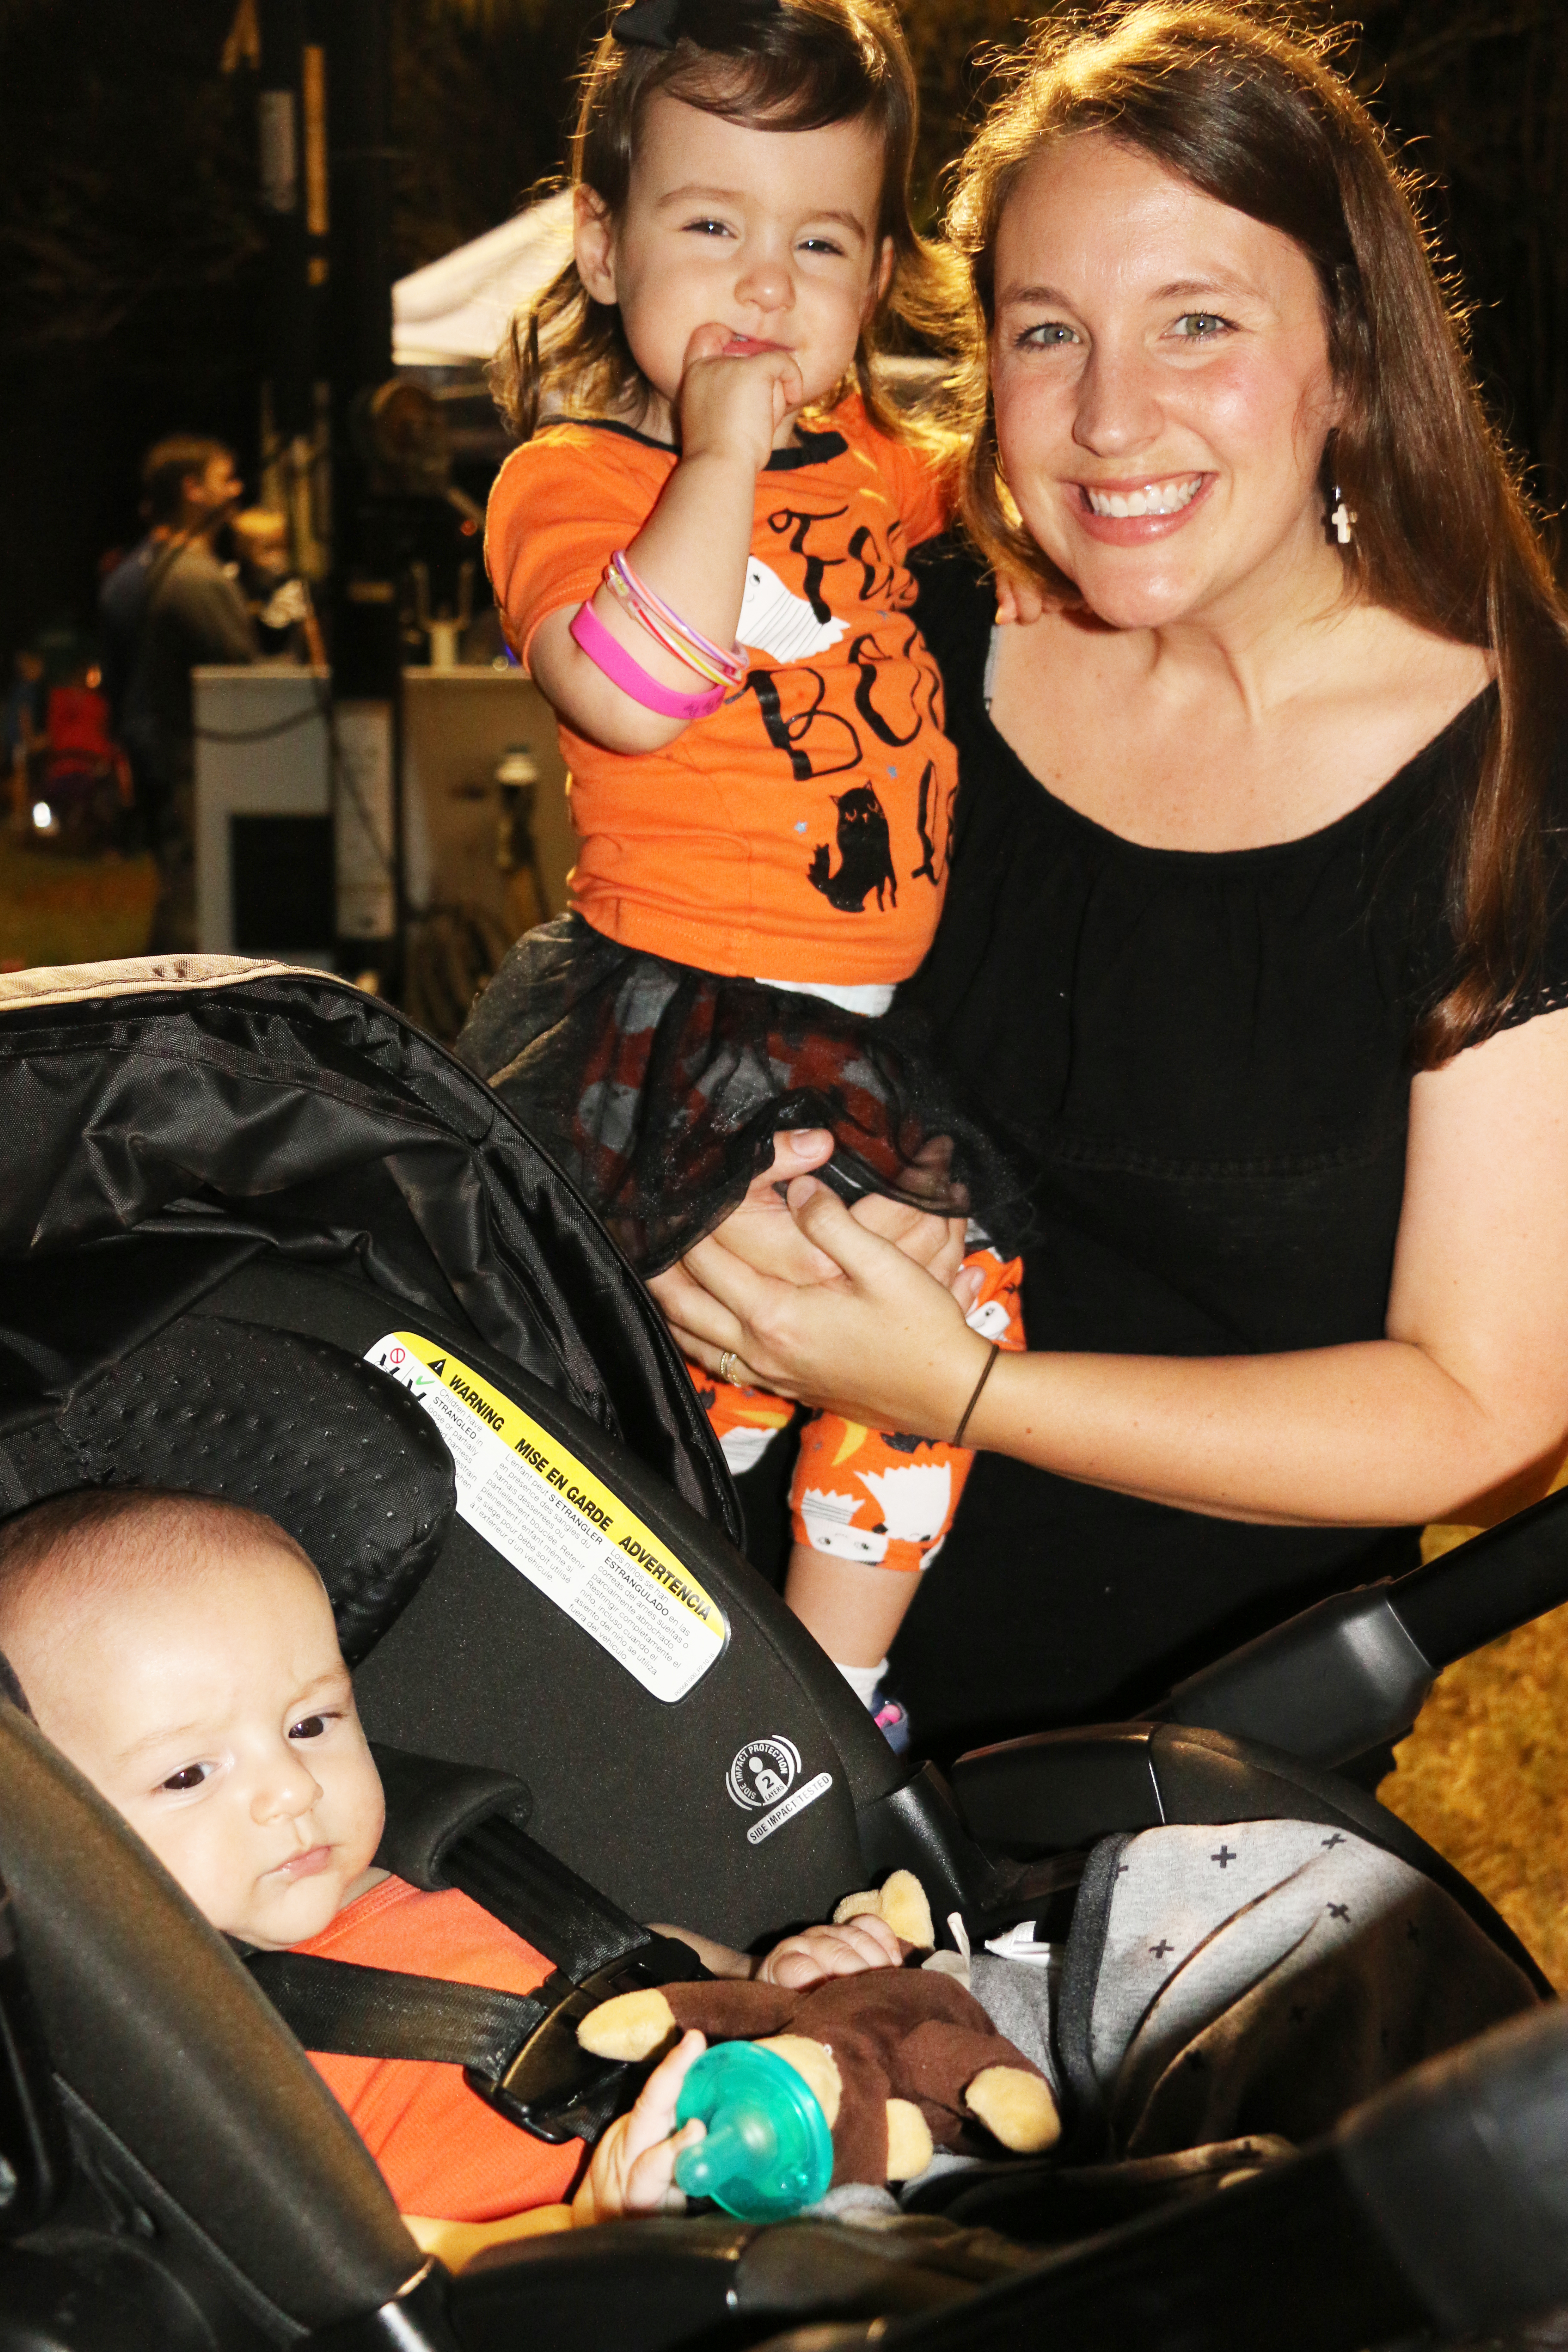 It's a family affair: Baby Luke, Sister Hope and mom Brianna Gibson take in the festivities.